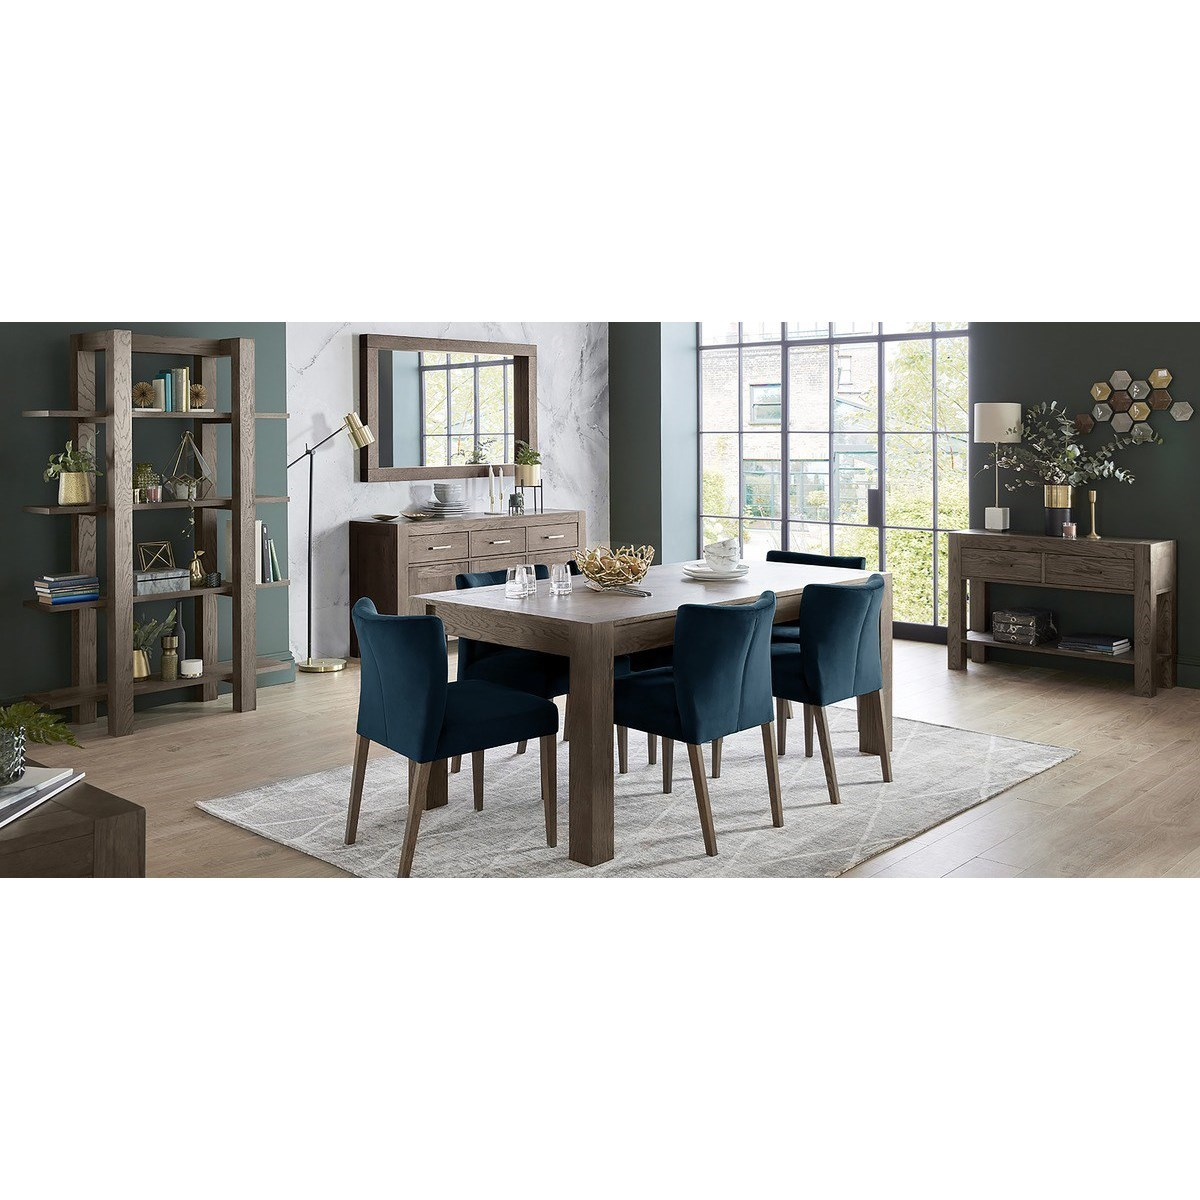 Gardiner-Saylor Dining Room Group by Palliser at Jordan's Home Furnishings